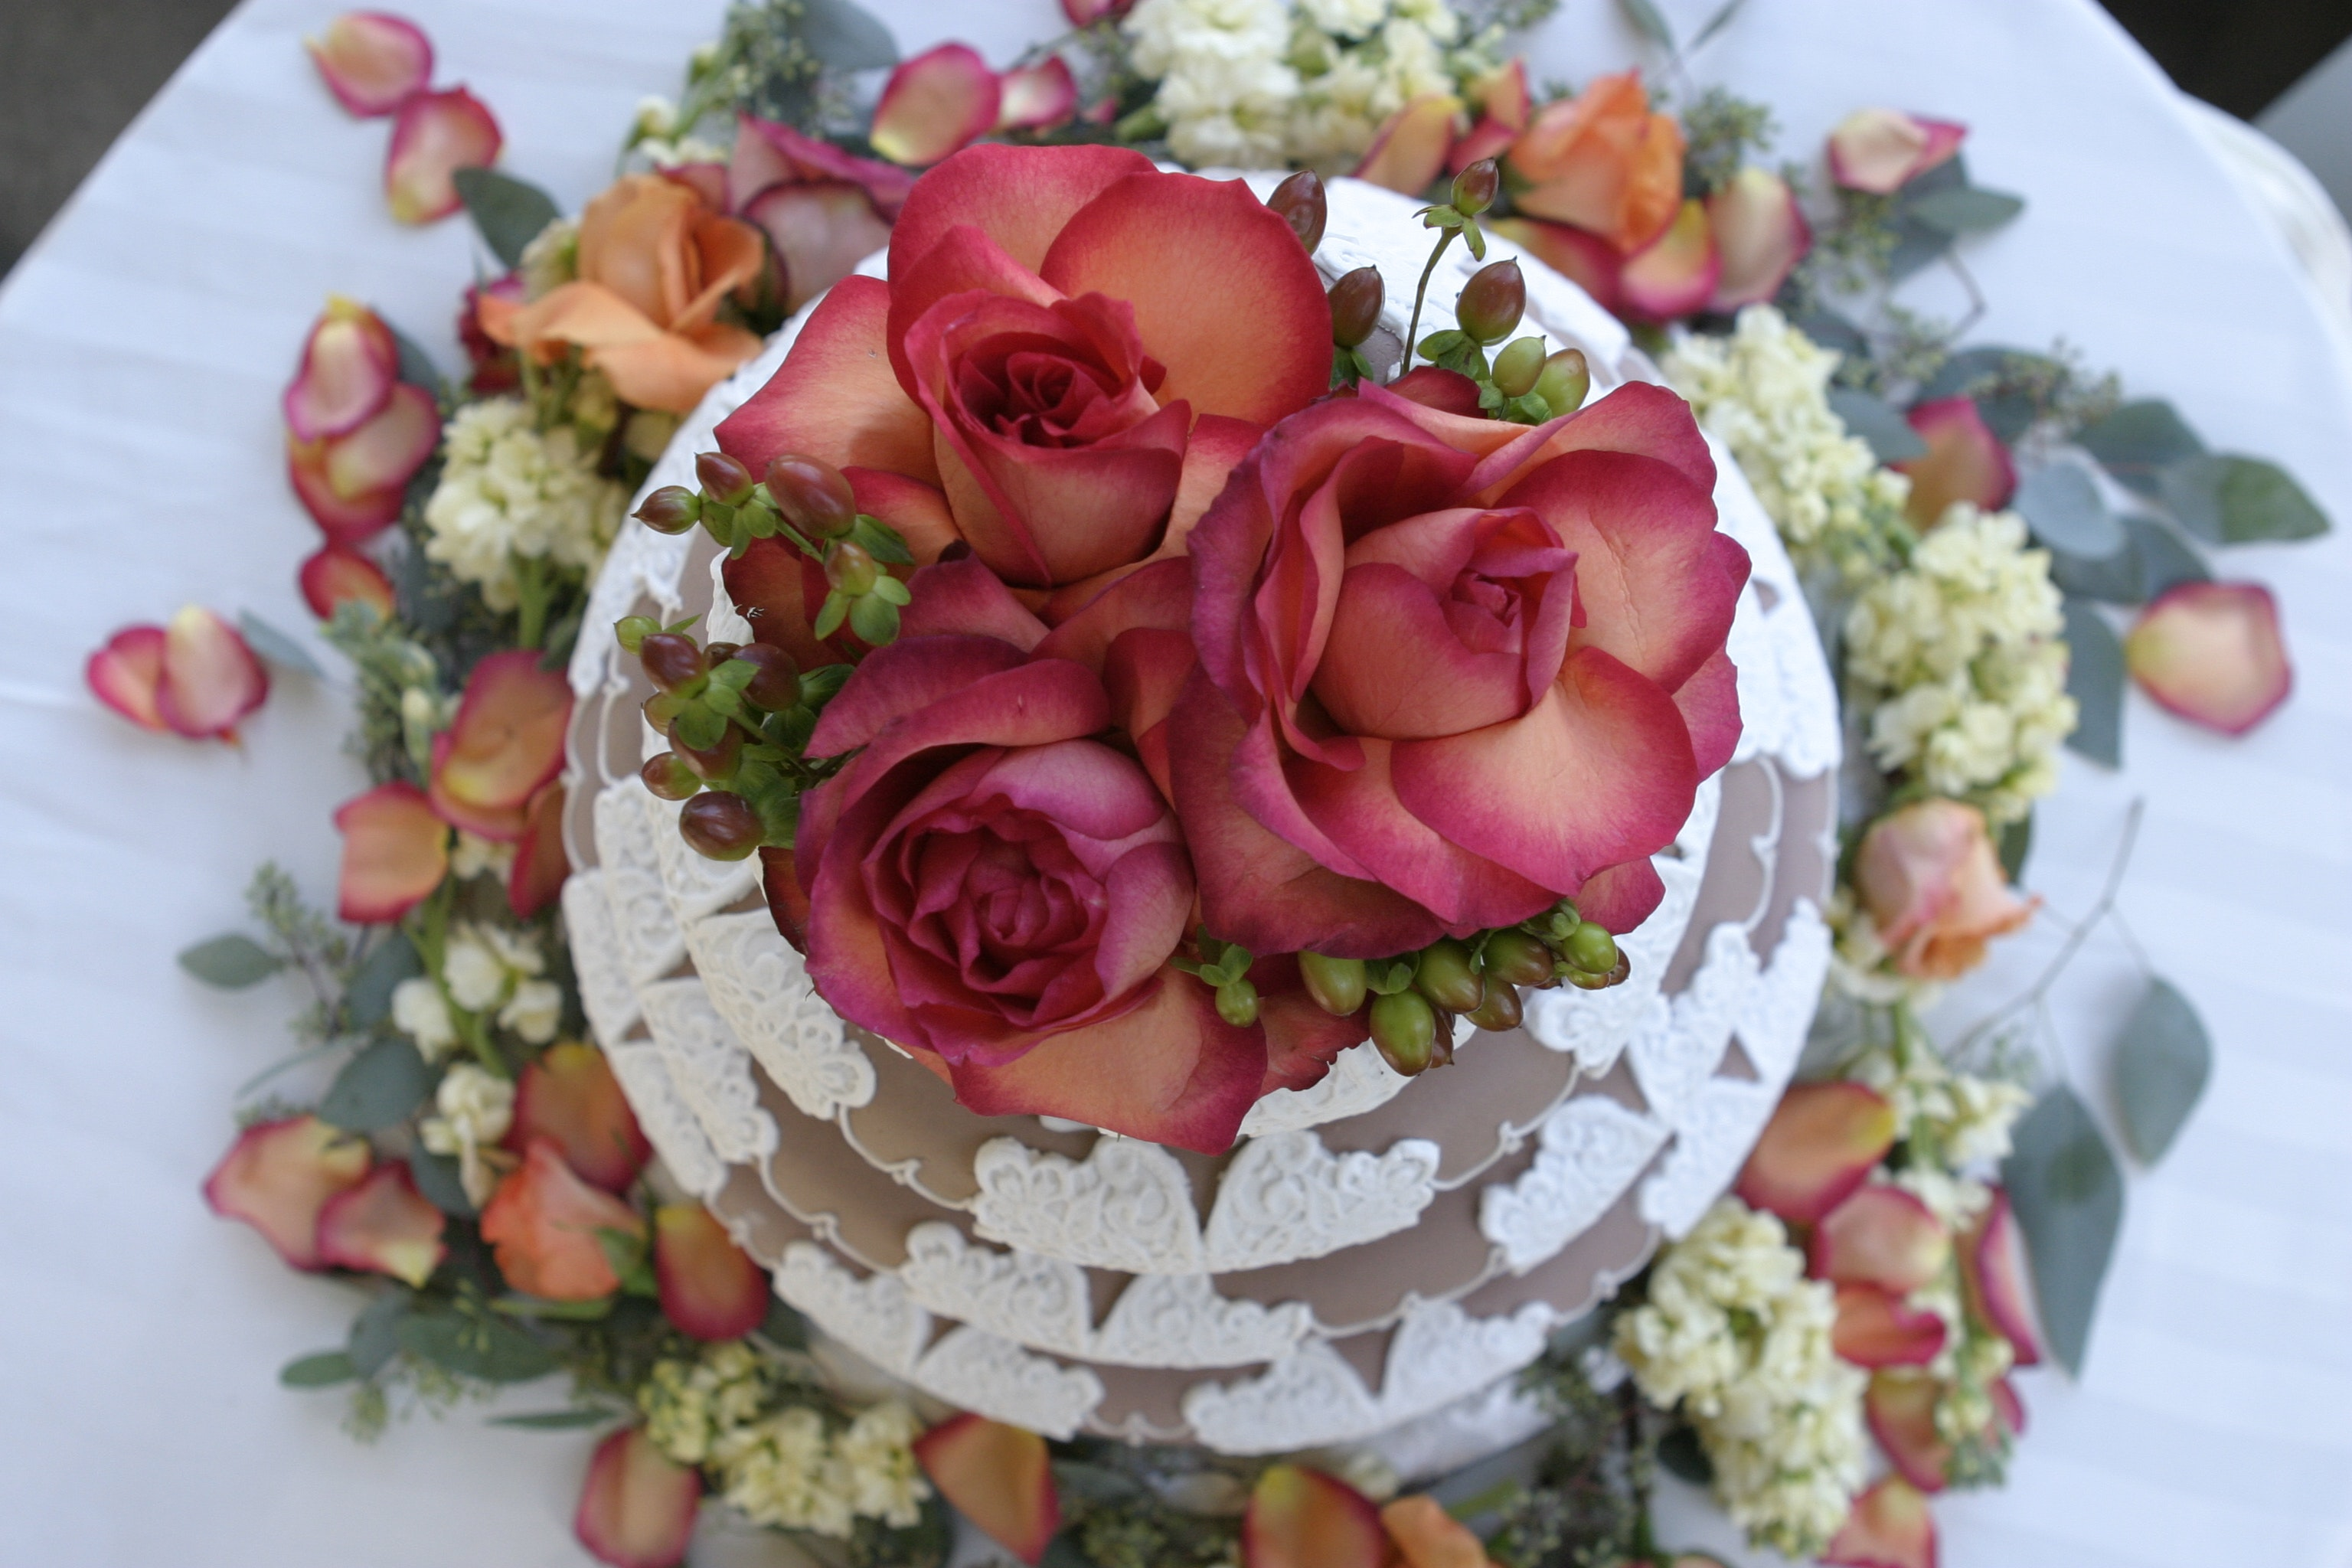 bloom-blossom-cake-784210